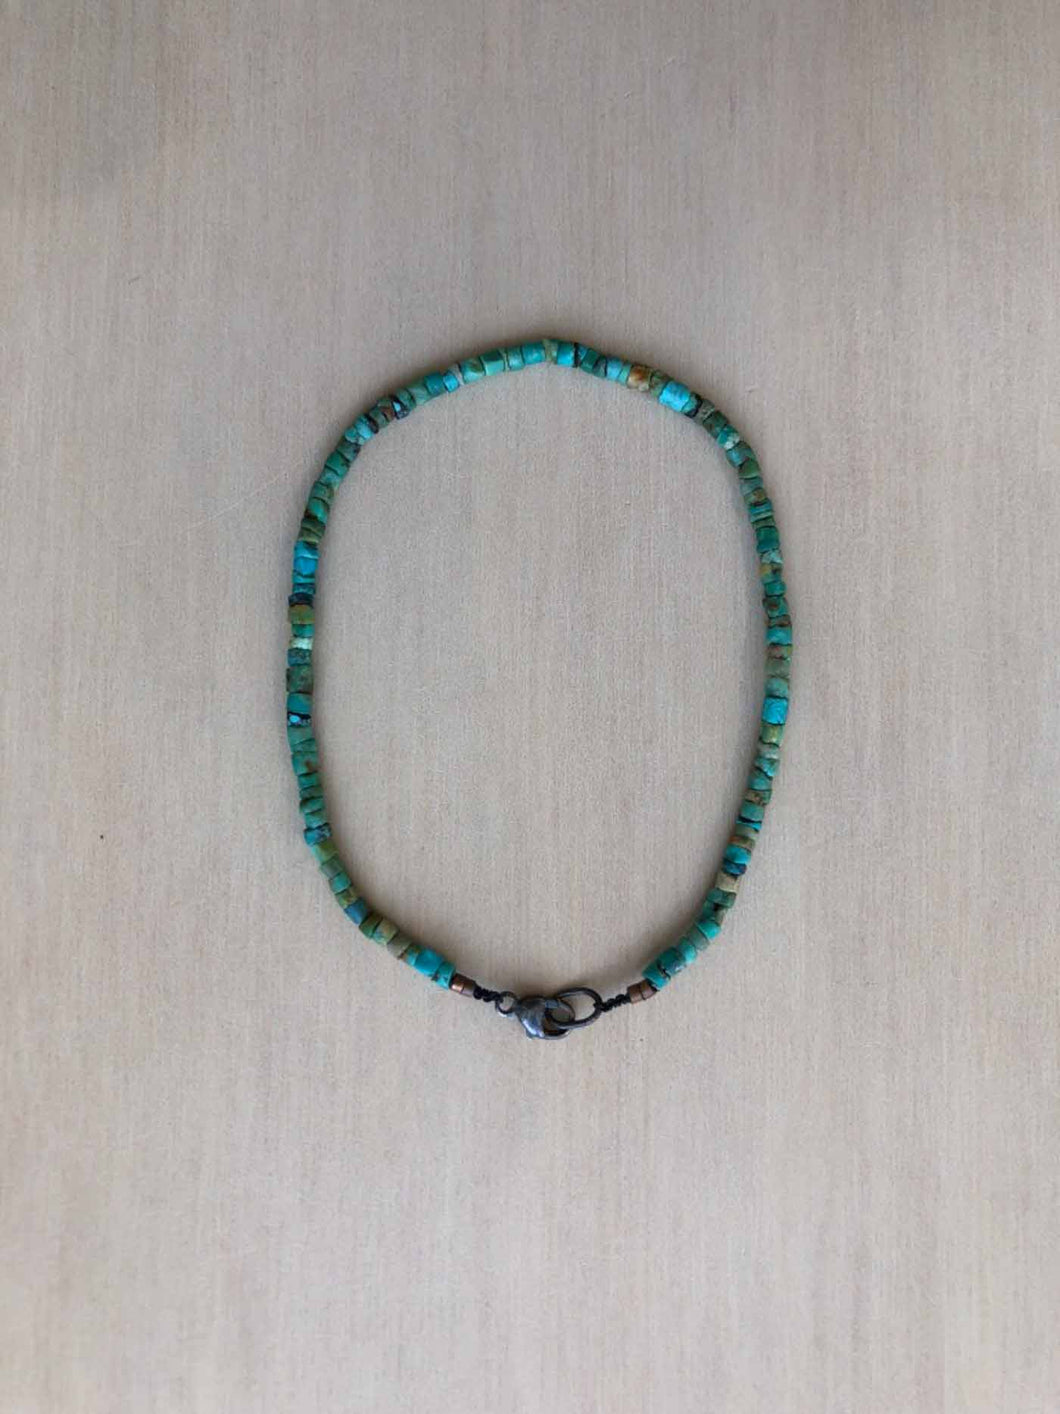 Rough Turquoise Beaded Bracelet